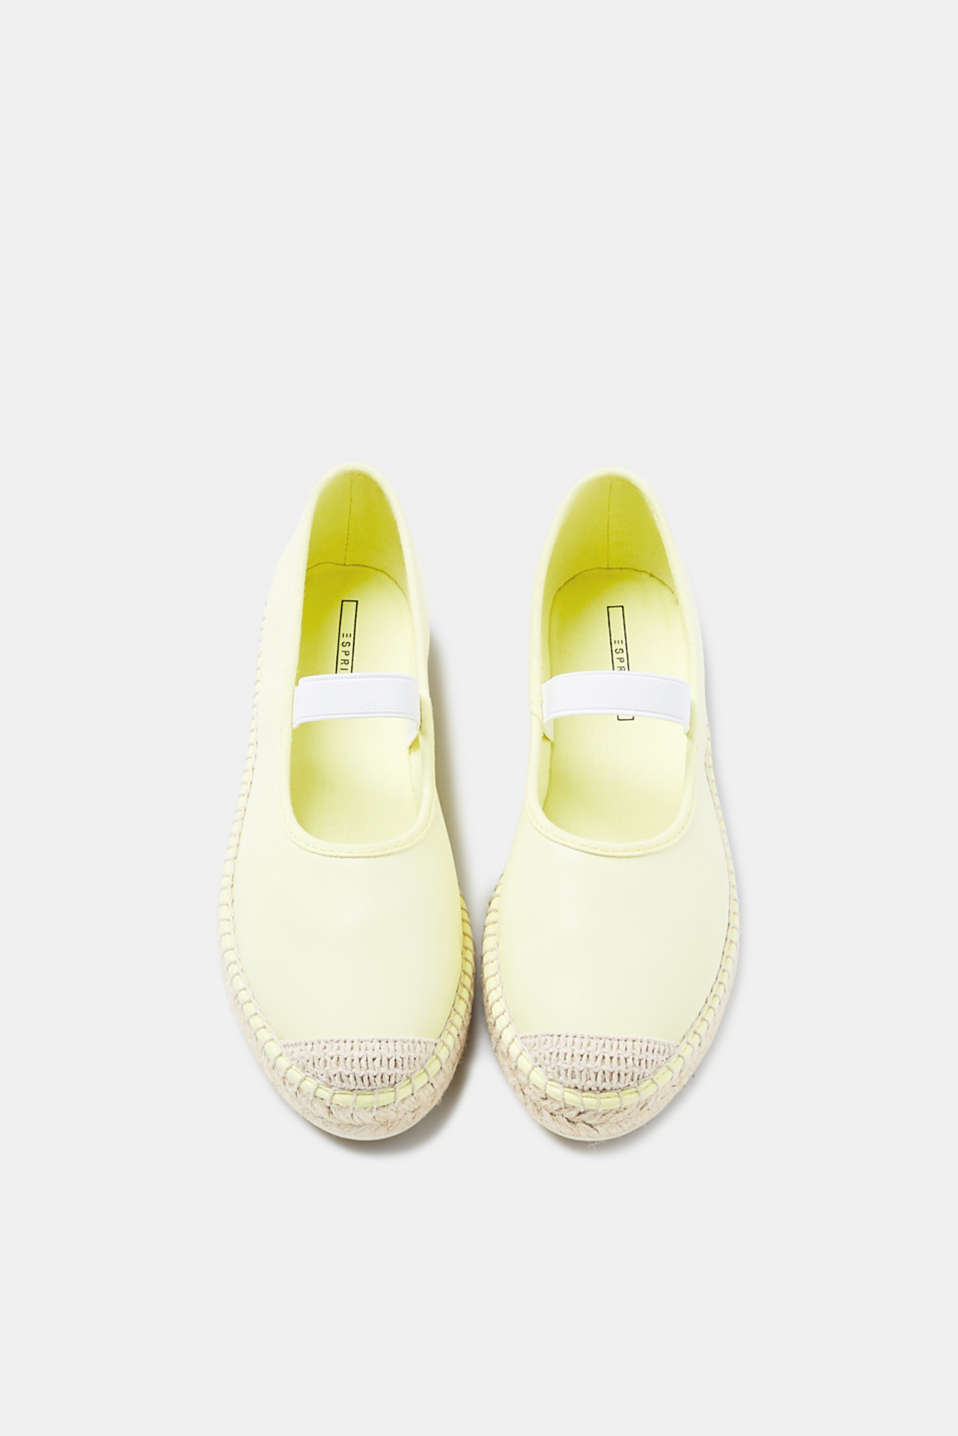 Slip-on espadrilles in a smooth faux leather